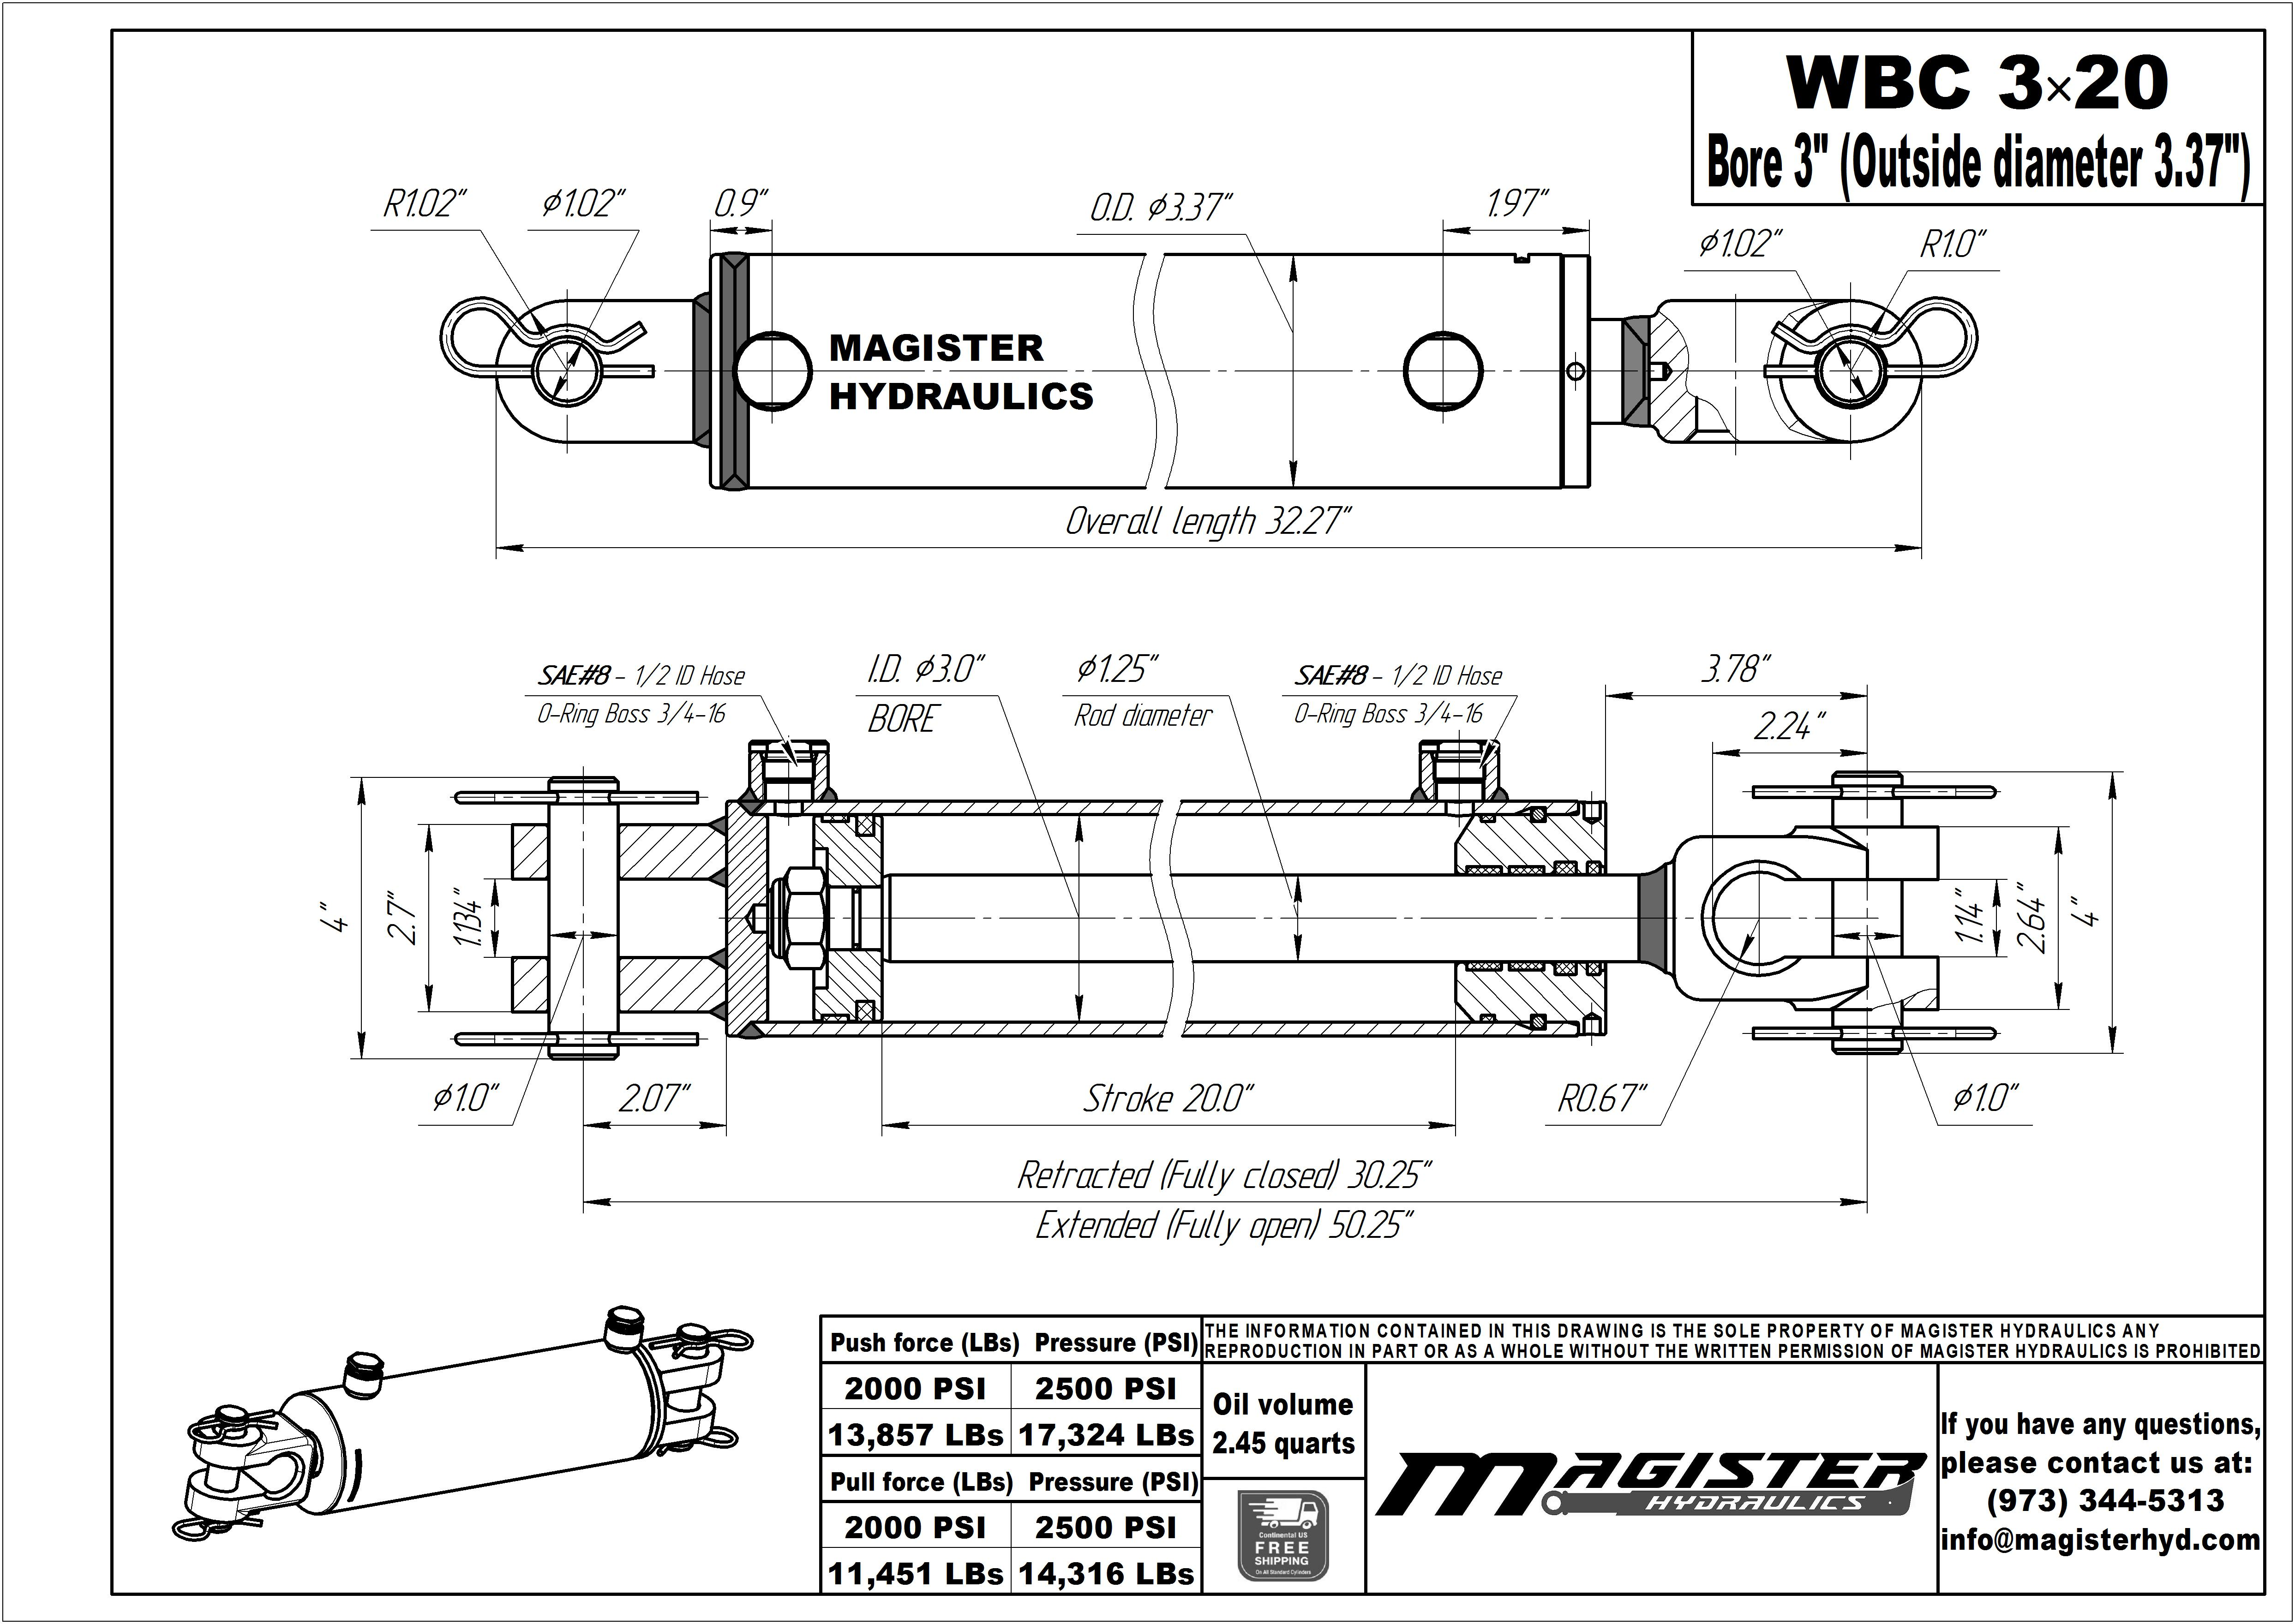 3 bore x 20 stroke hydraulic cylinder, ag clevis double acting cylinder | Magister Hydraulics